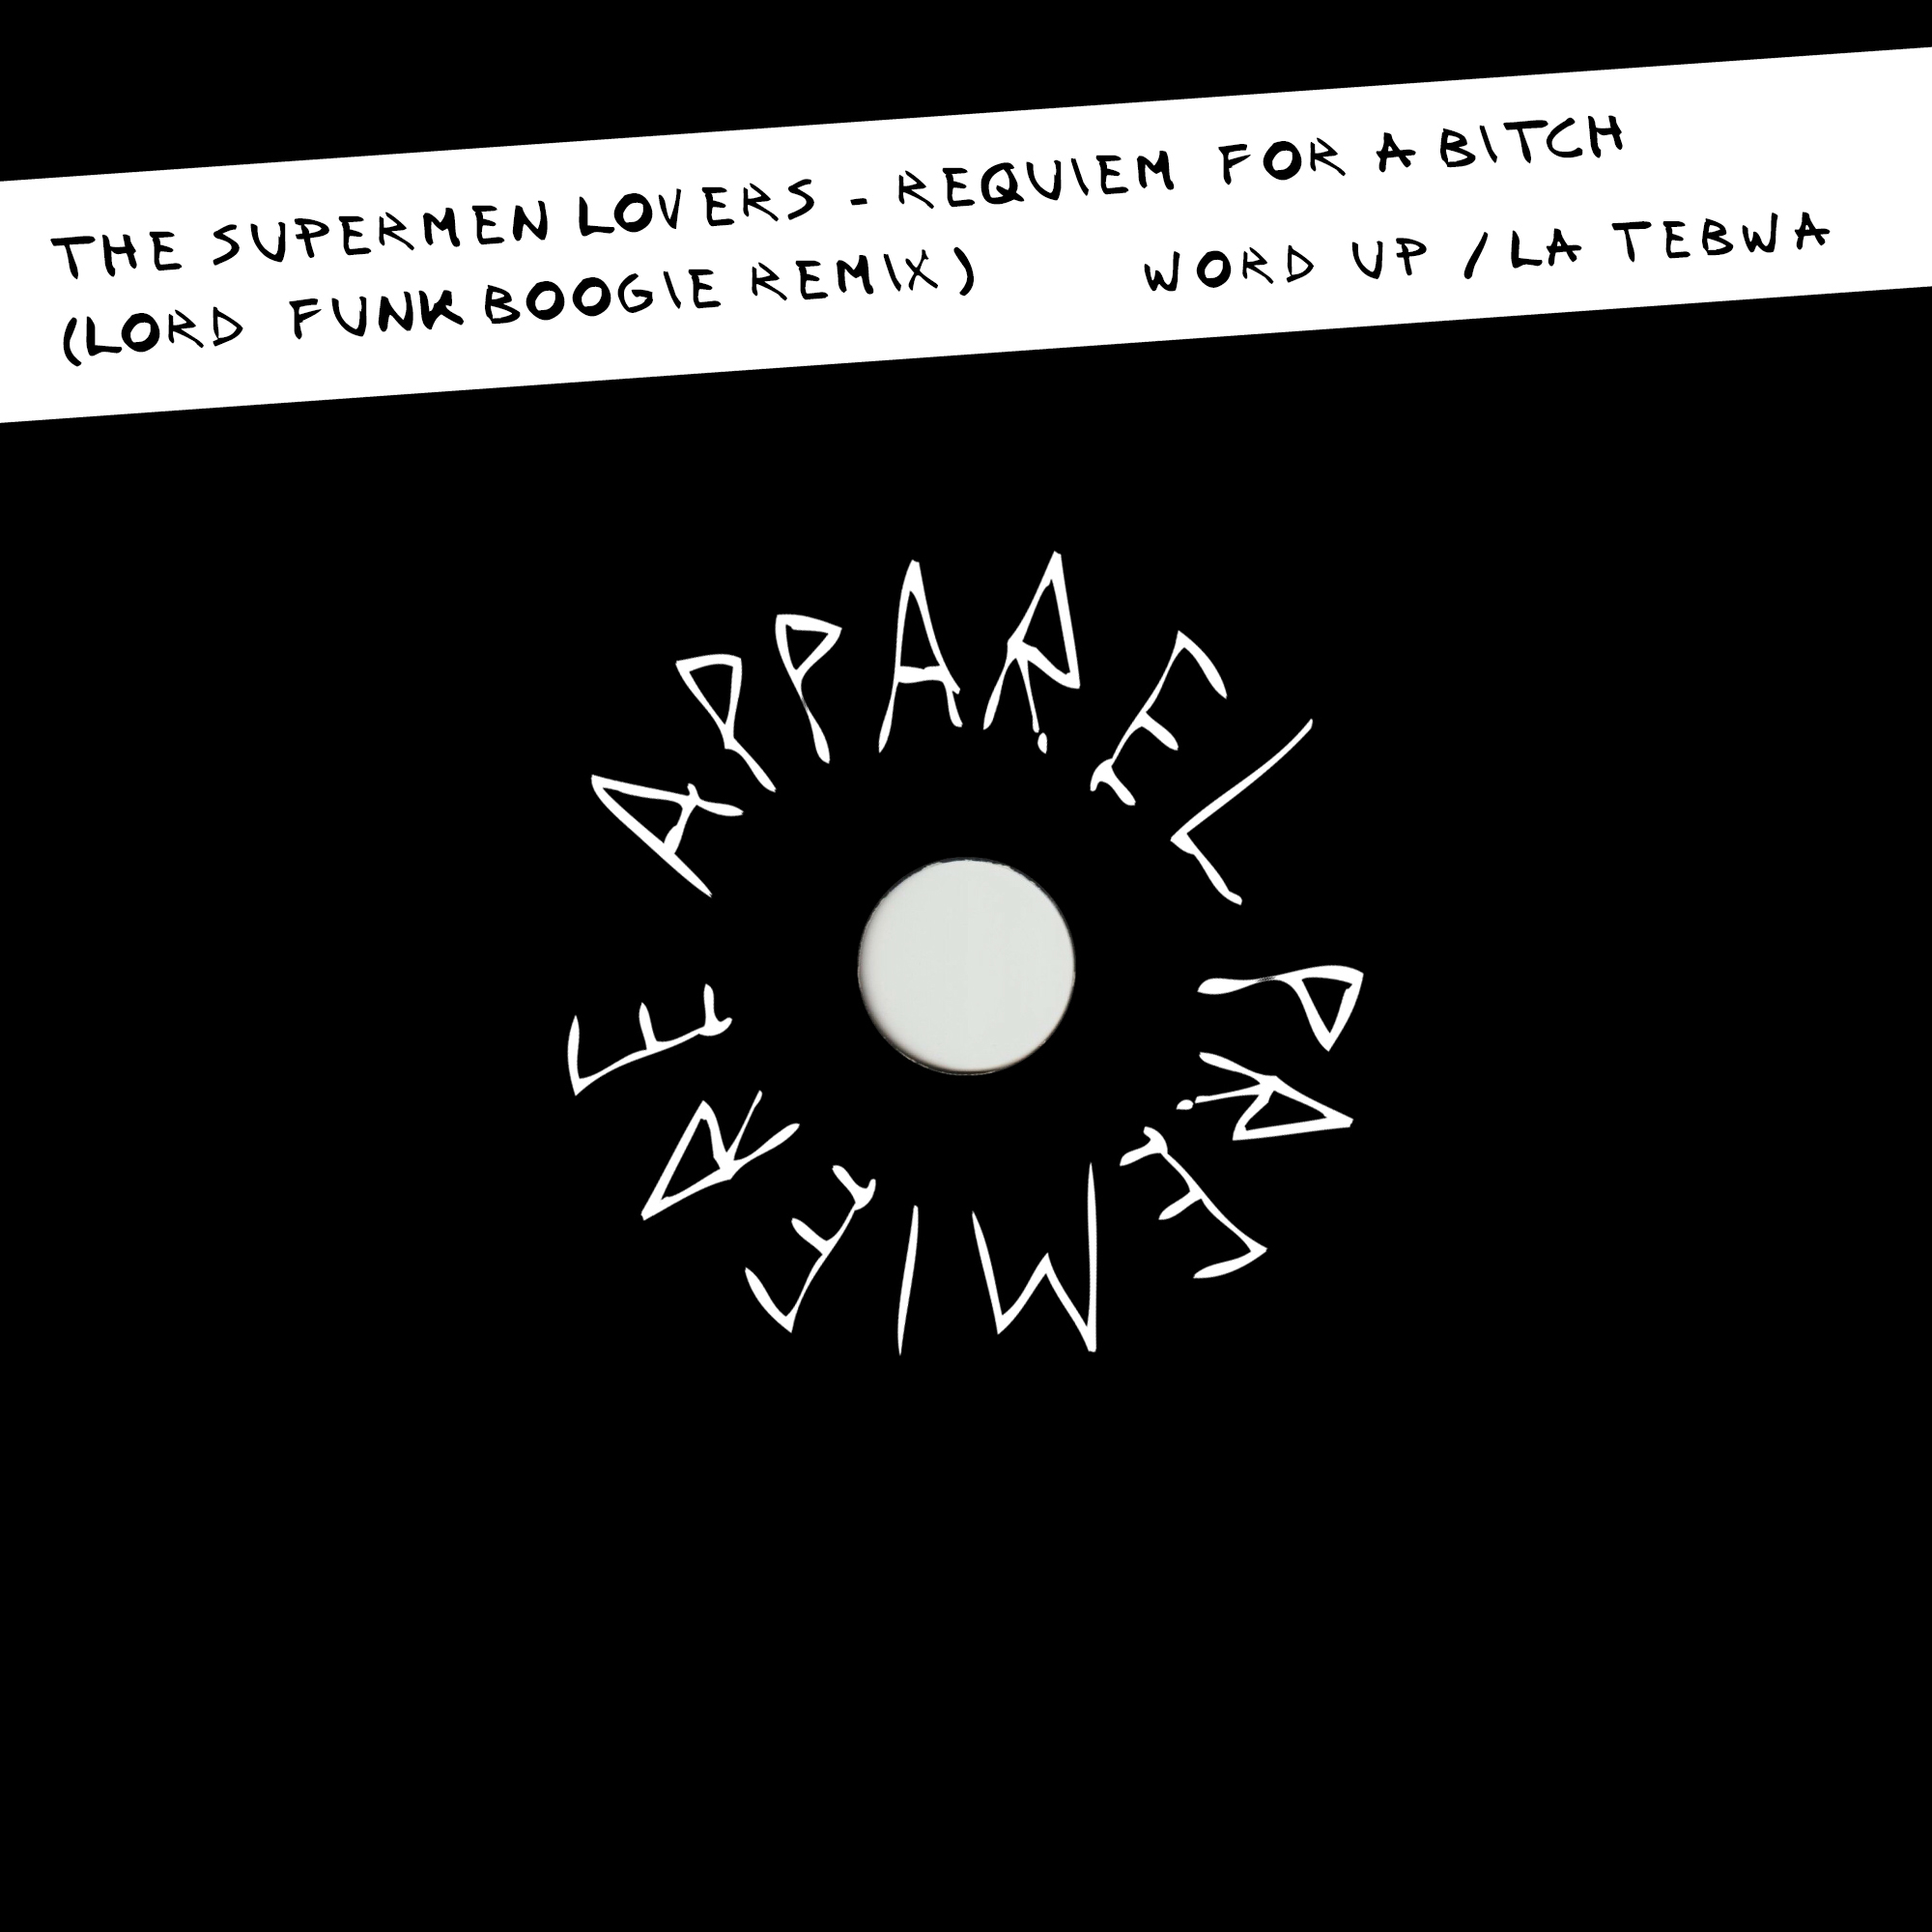 APPAREL PREMIERE The Supermen Lovers – Requiem for a bitch (Lord Funk Boogie Remix) [Word Up : La Tebwa] Artwork